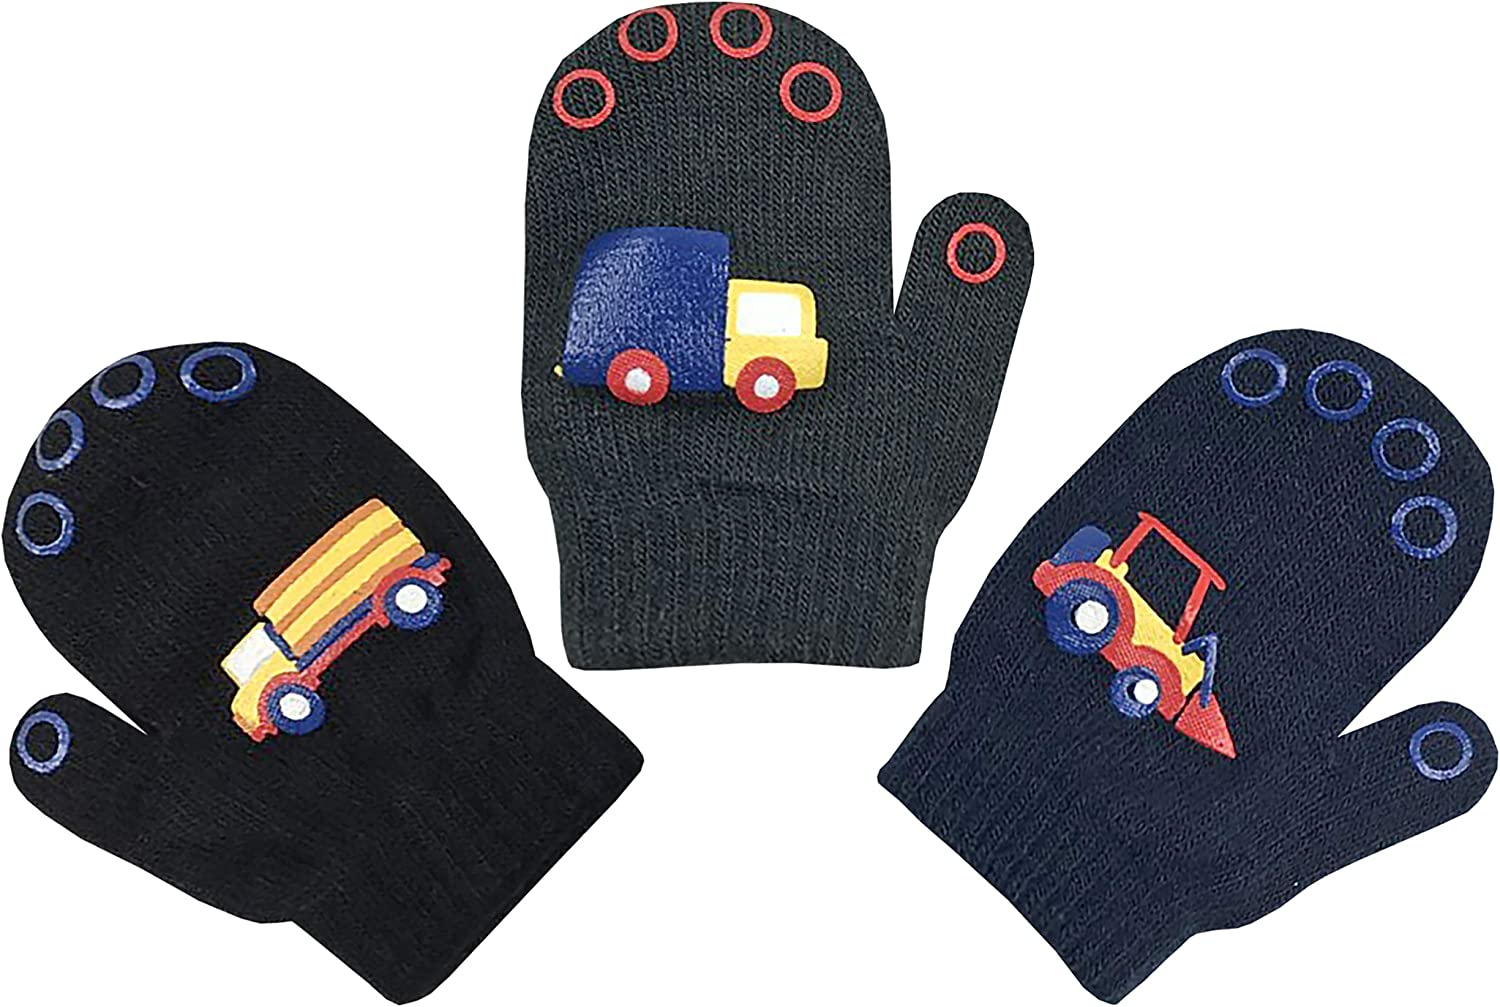 N'Ice Caps Toddler Boys Girls and Infants Magic Stretch Mittens 3 Pairs Assortment